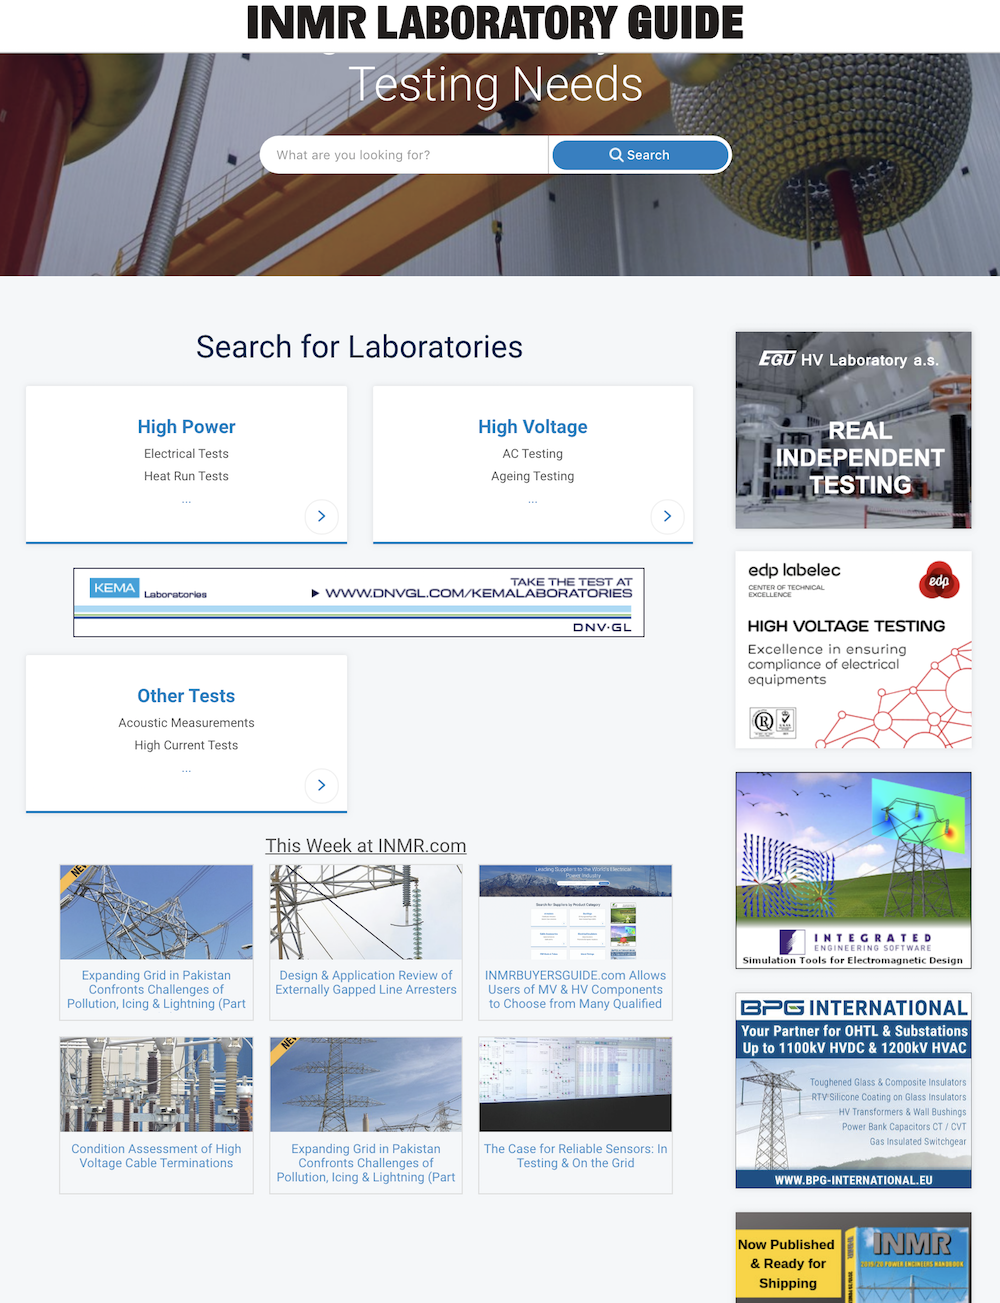 inmrlaboratoryguide.com Helps Manufacturers & Users of Equipment Select Qualified HV & HP Test Laboratories www